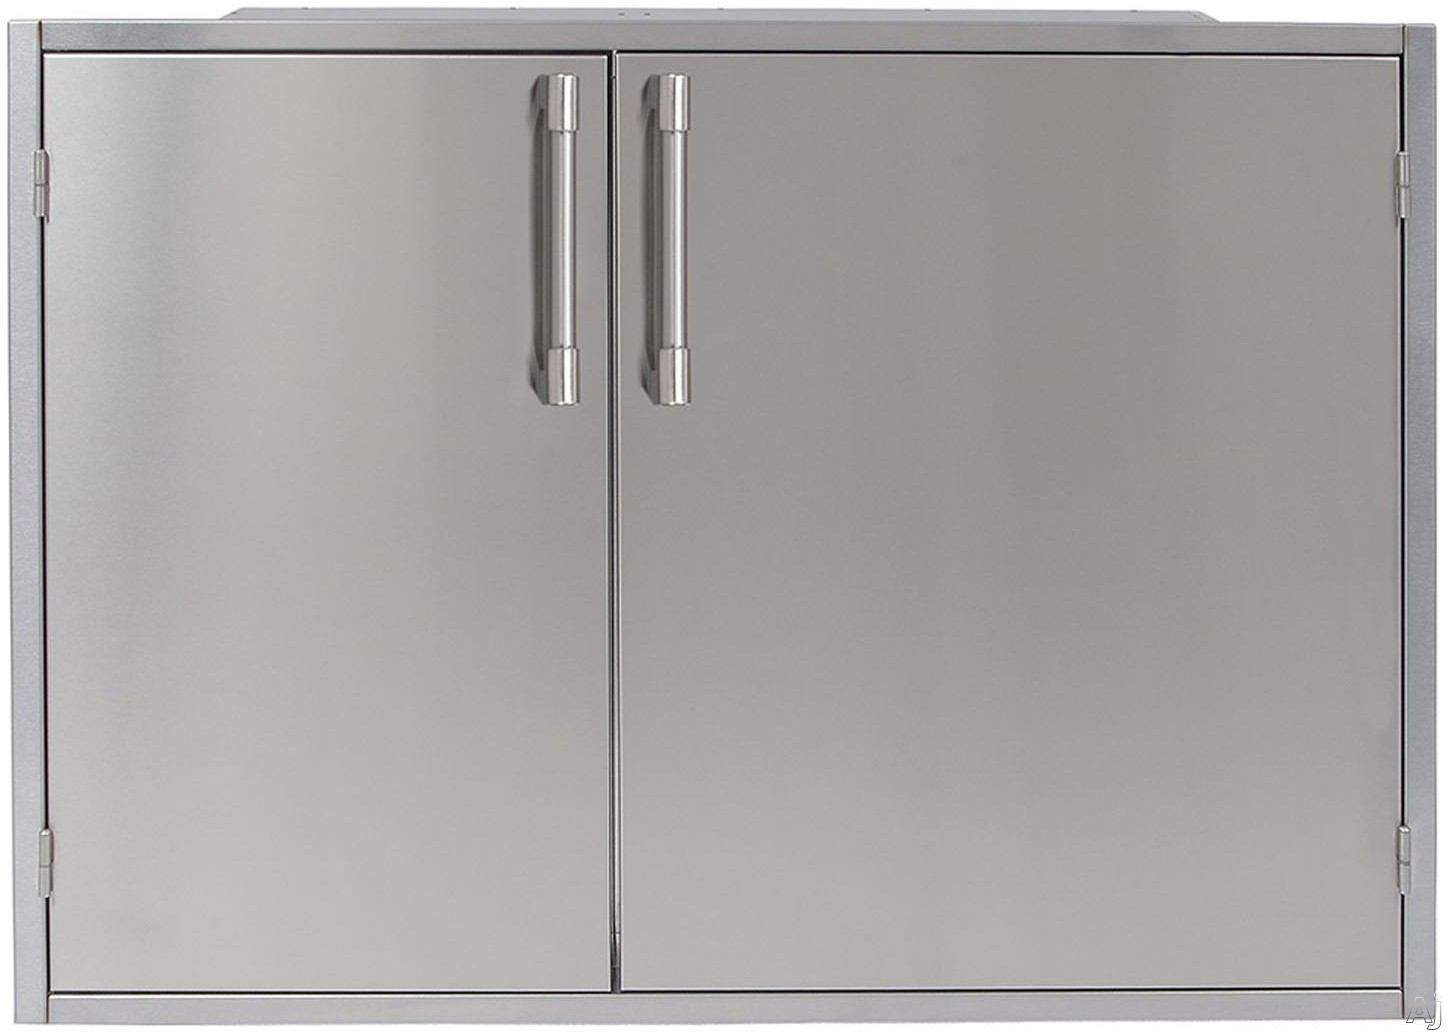 Alfresco Axedsp30l 30 Inch Low-profile Built-in Dry Pantry